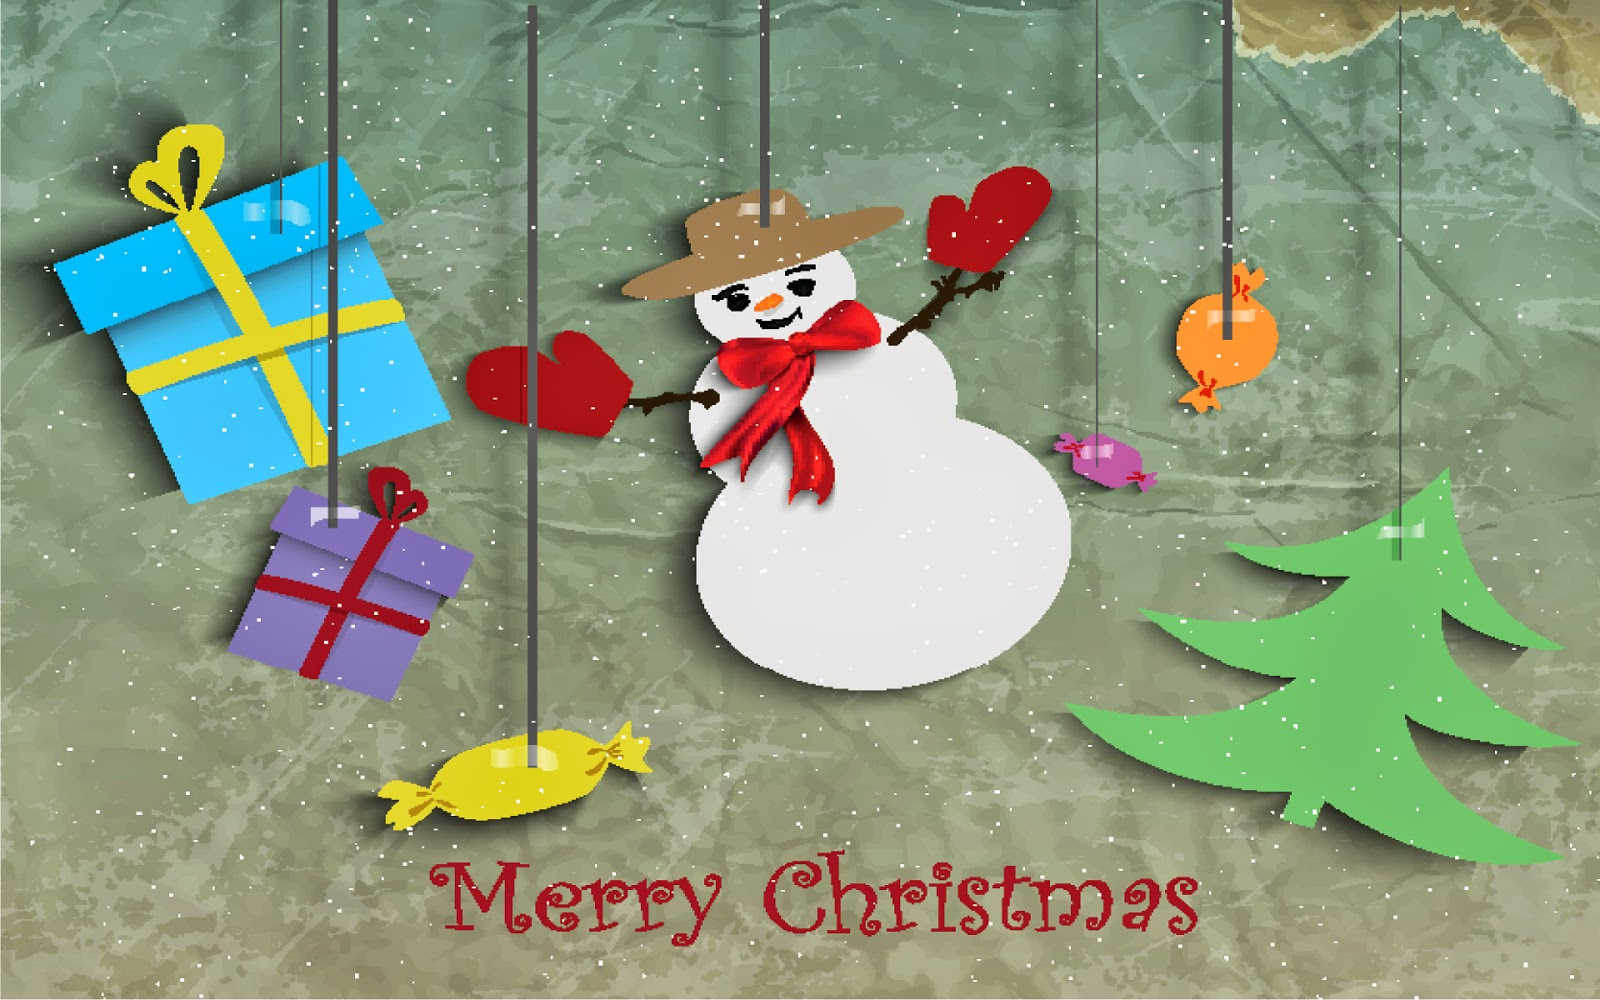 merry-Christmas-paper-cut-cards-images-wallpaper-for-kids-children-family-friends.jpg